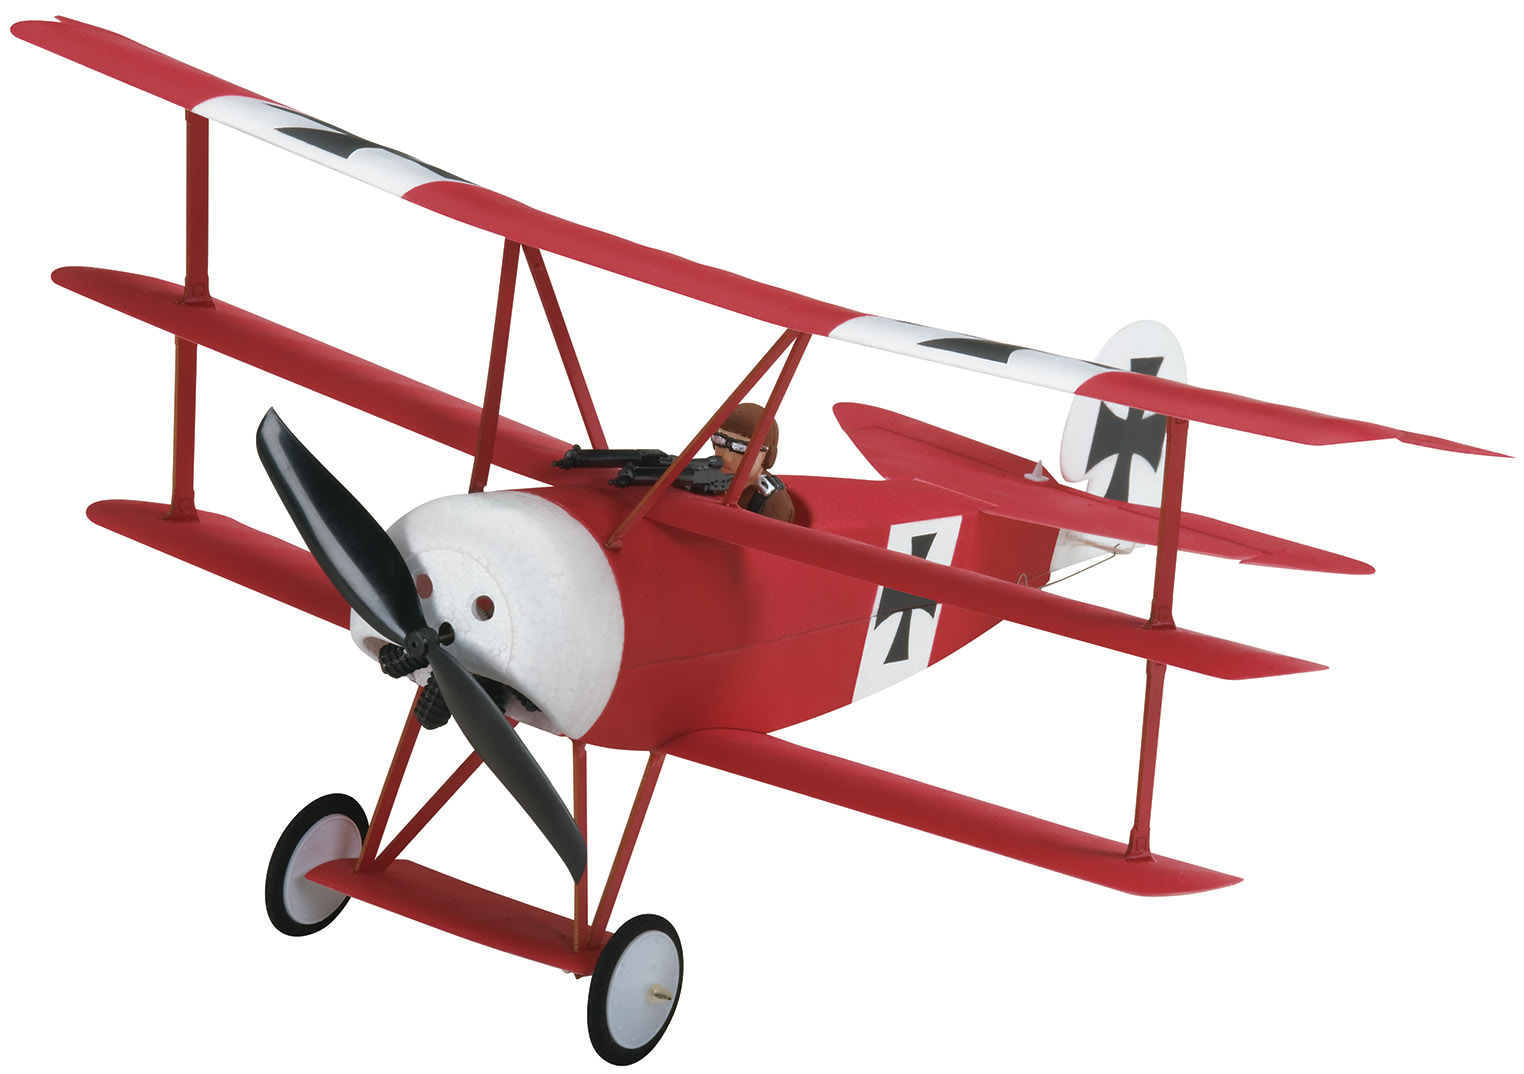 Flyzone Fokker Dr.1 Triplane — Just in for Review